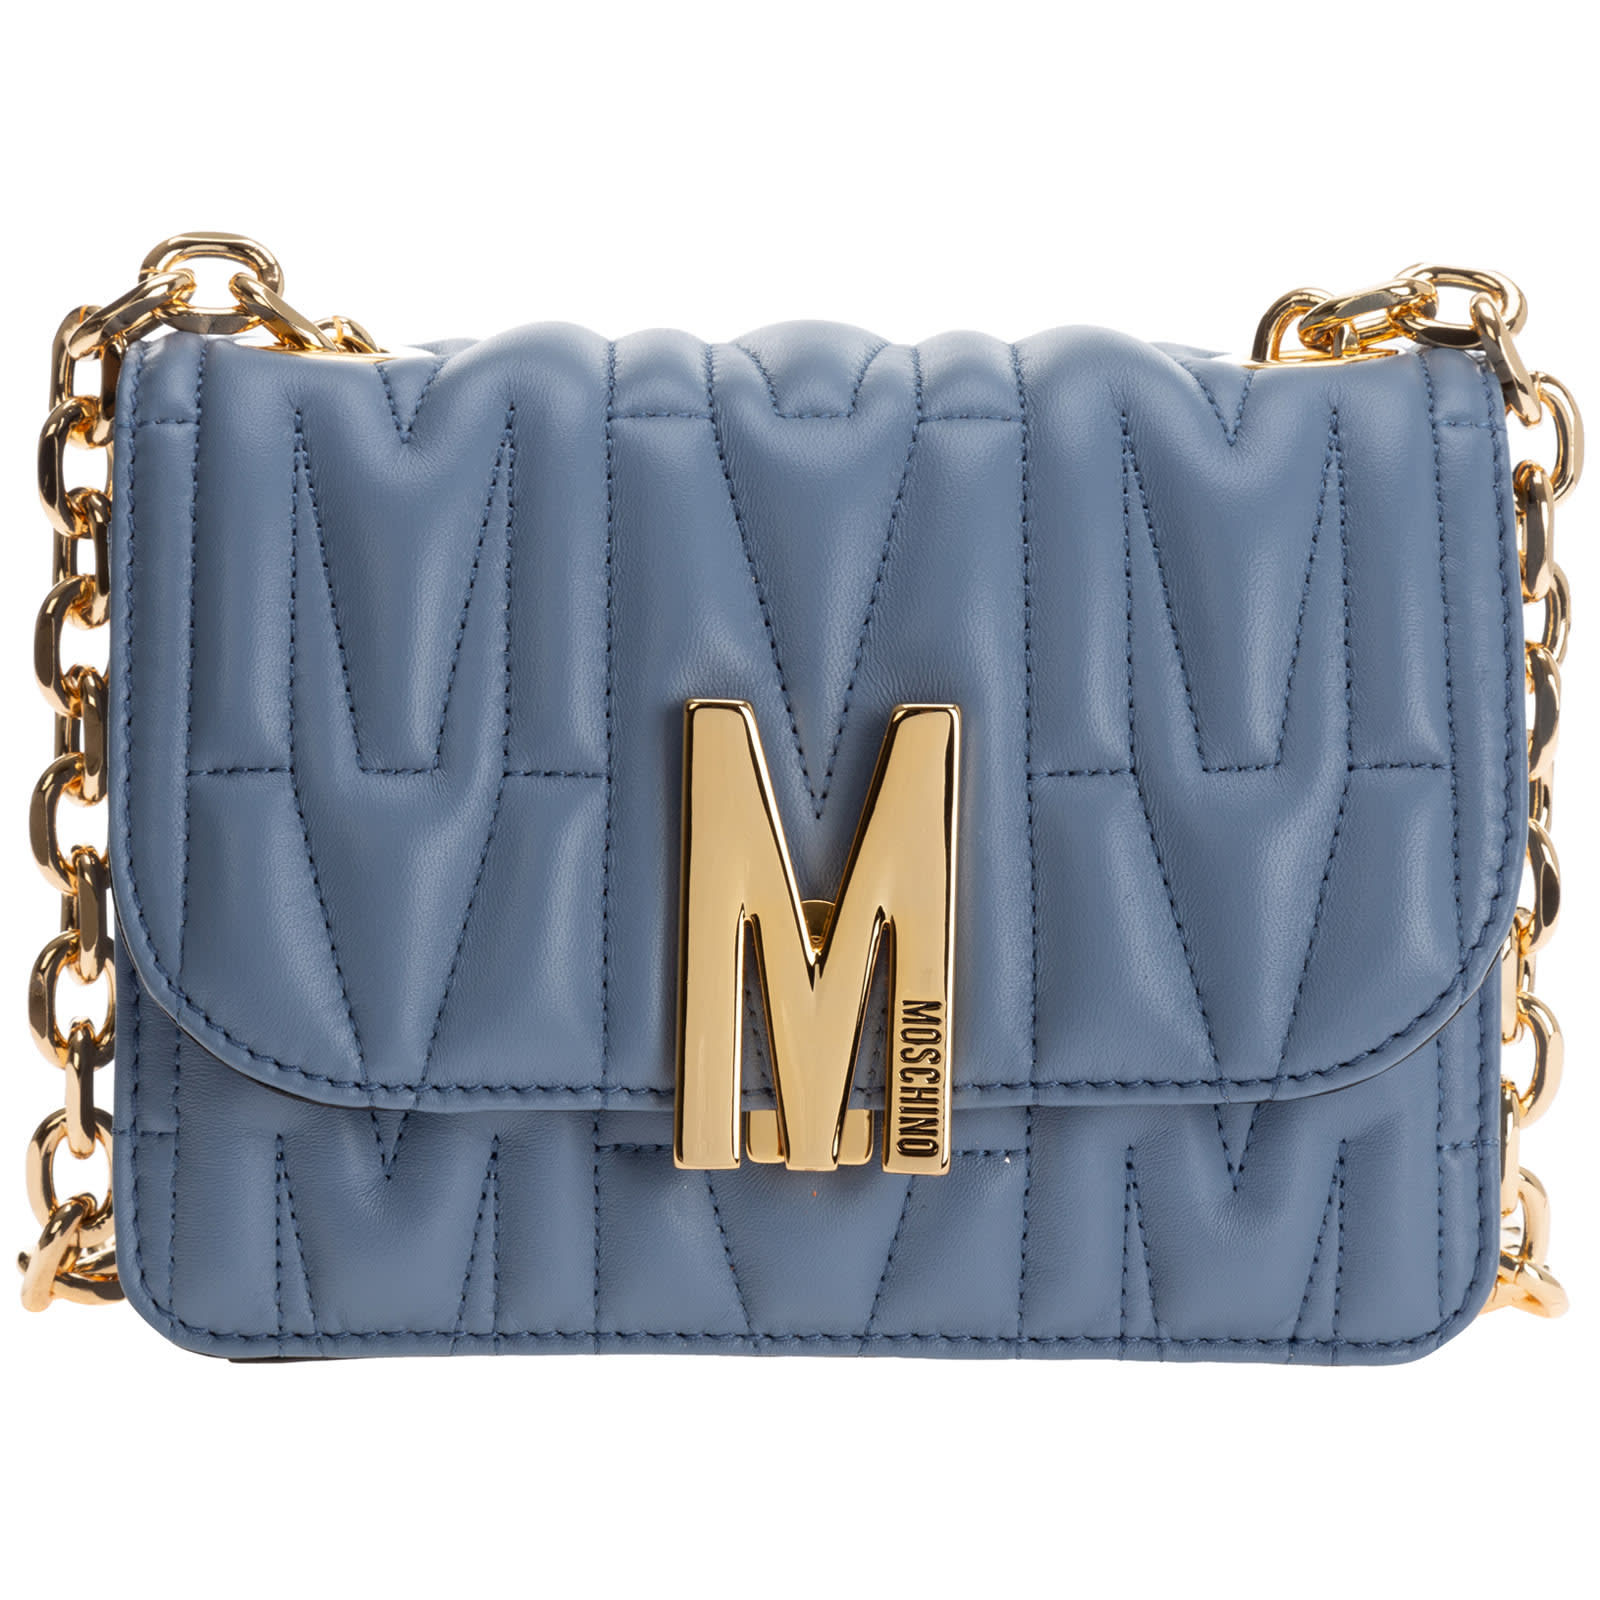 Moschino M SHOULDER BAG